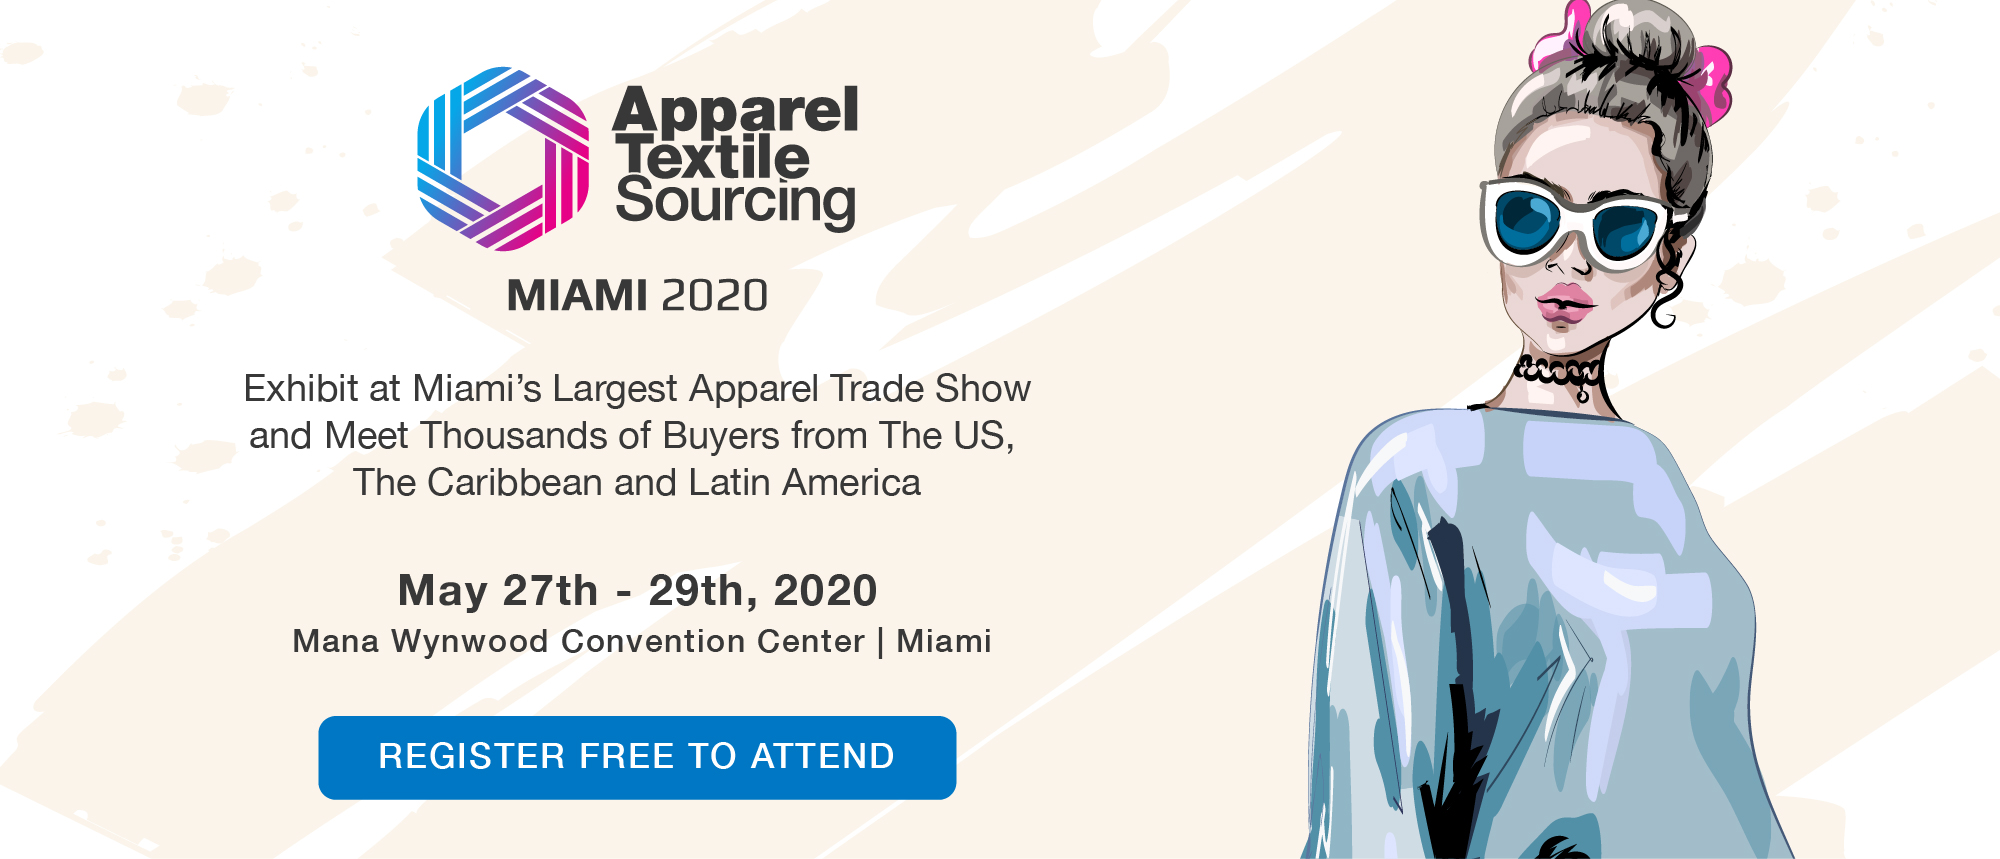 Exhibit at Miami's Largest Apparel Trade Show and Meet Thousands of Buyers from The US,  The Caribbean and Latin America